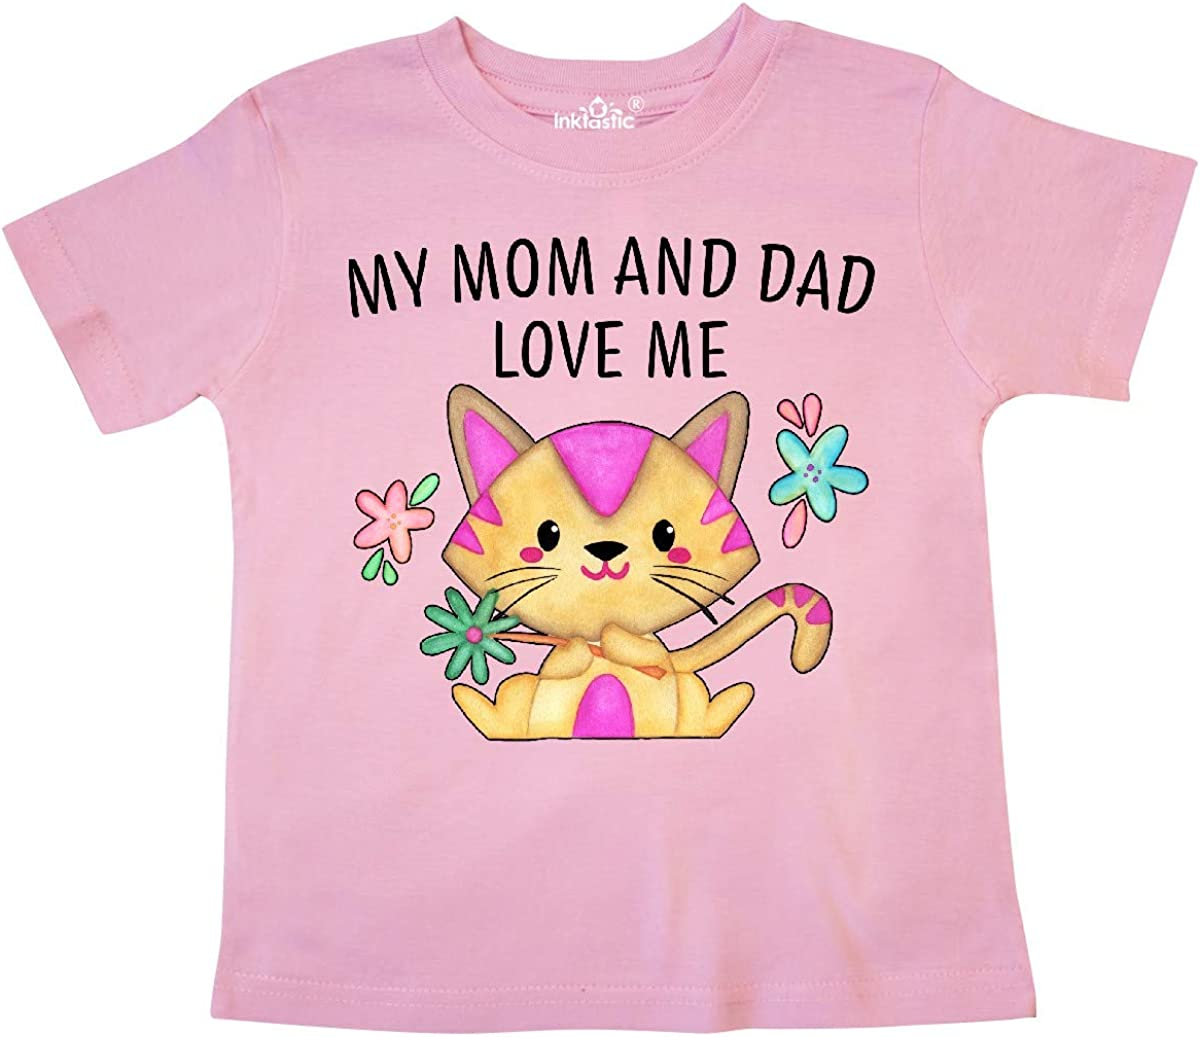 inktastic My Mom and Dad Love Me with Cute Kitten and Flowers Toddler T-Shirt